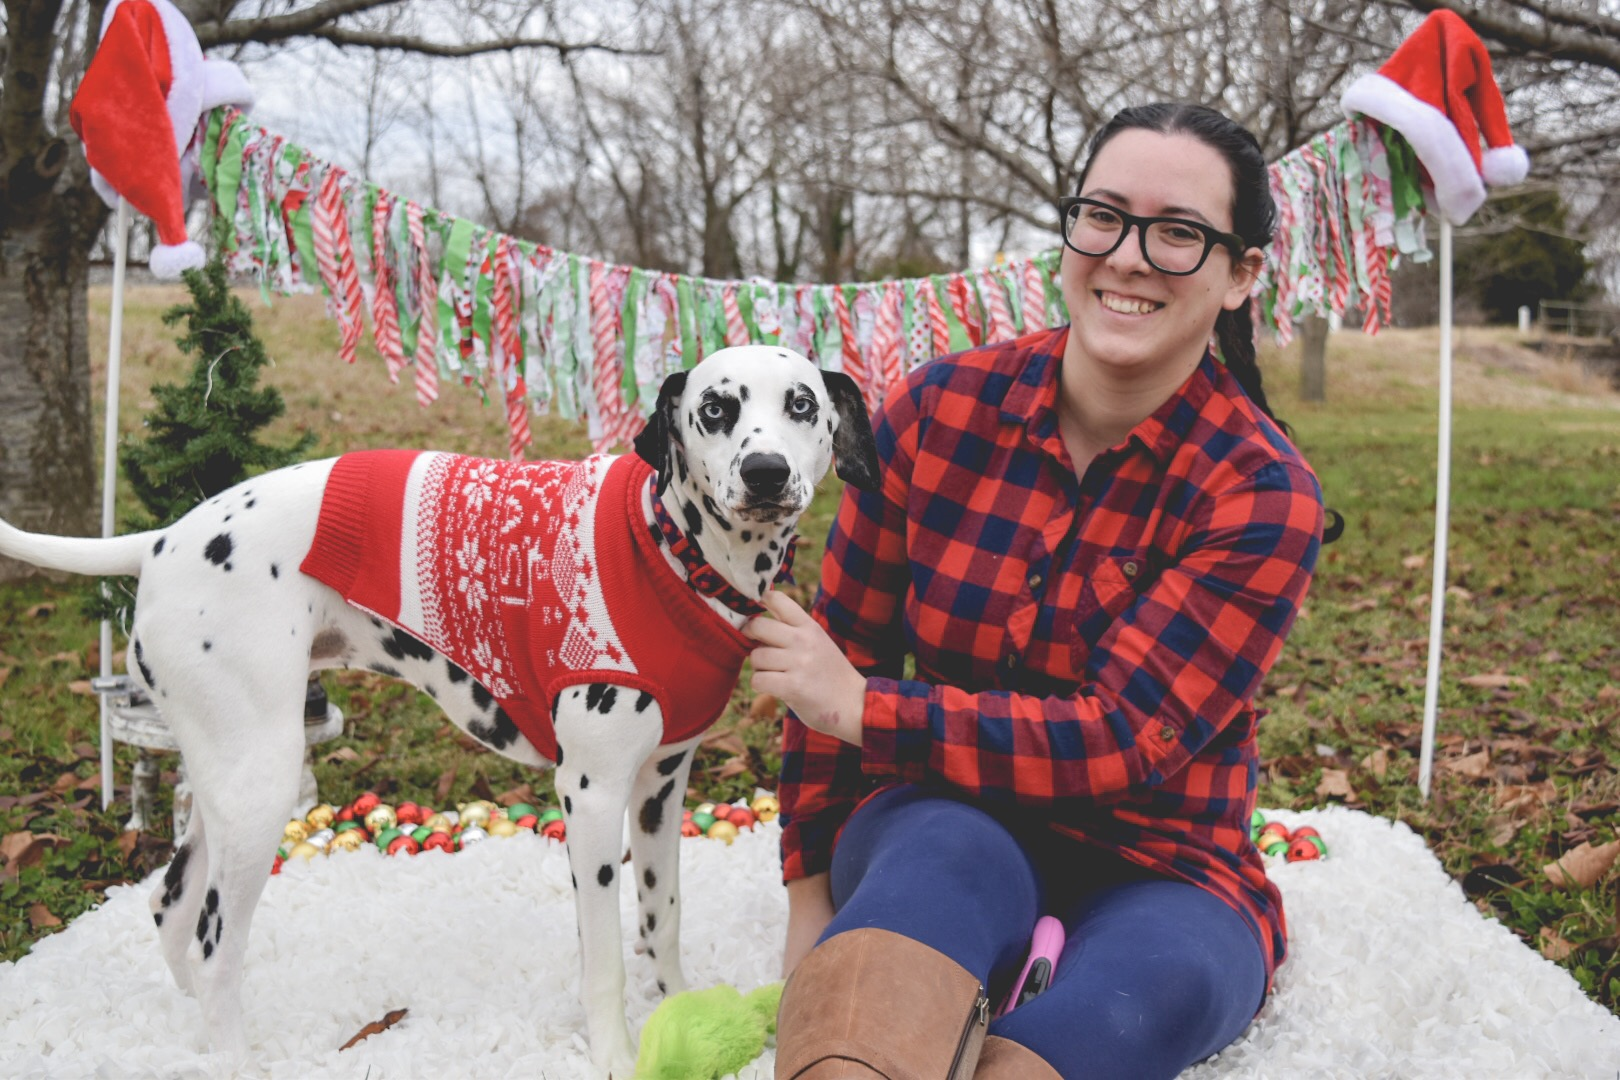 Kali came for a visit! - I LOVE this sweet Dalmatian! Rebecca is alright too… HA! Just kidding Rebecca, LOVE you too! You bring this adorable ball of joy back to me!